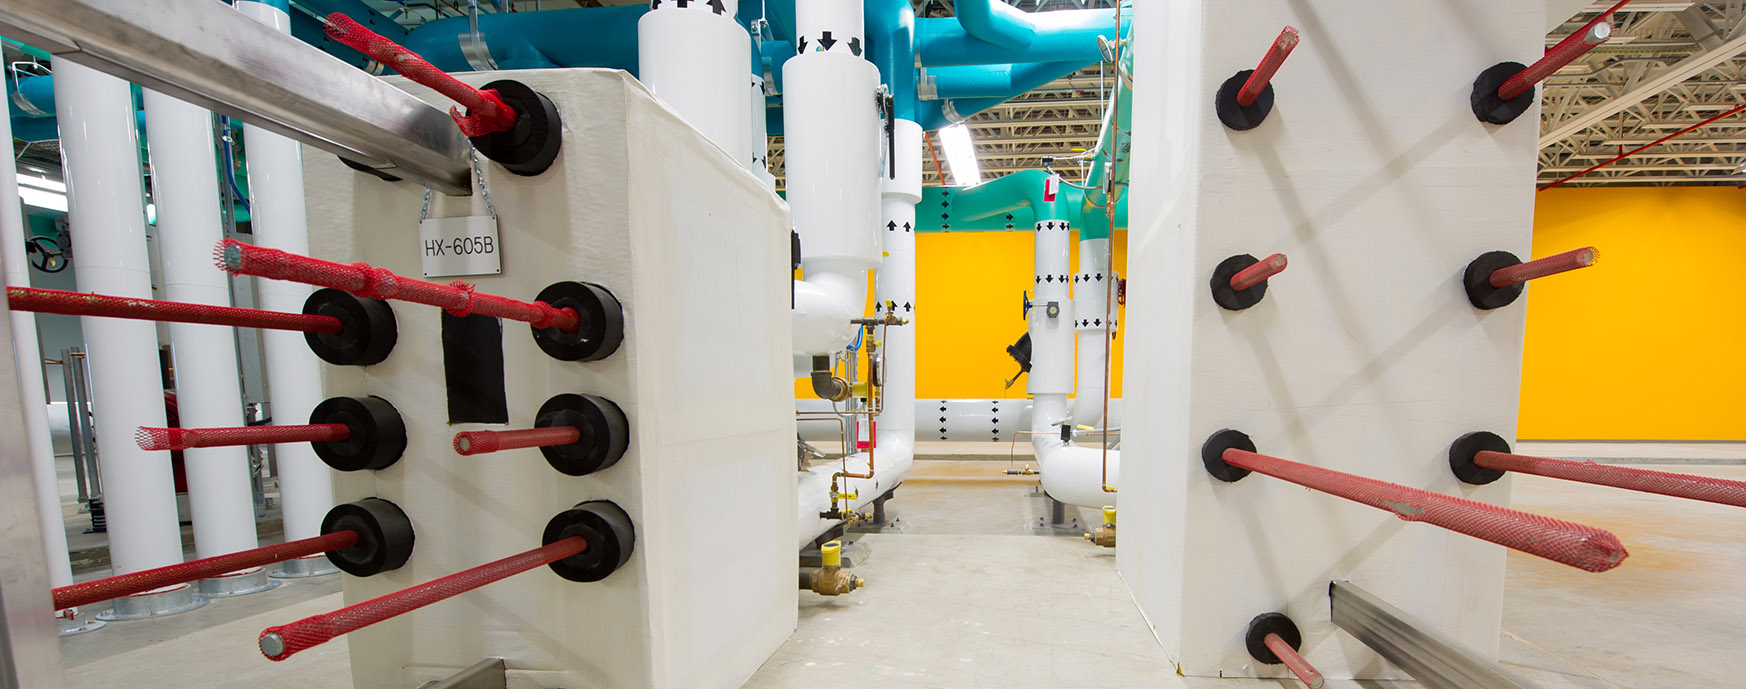 Photo of heat exchangers in data center integrated control room